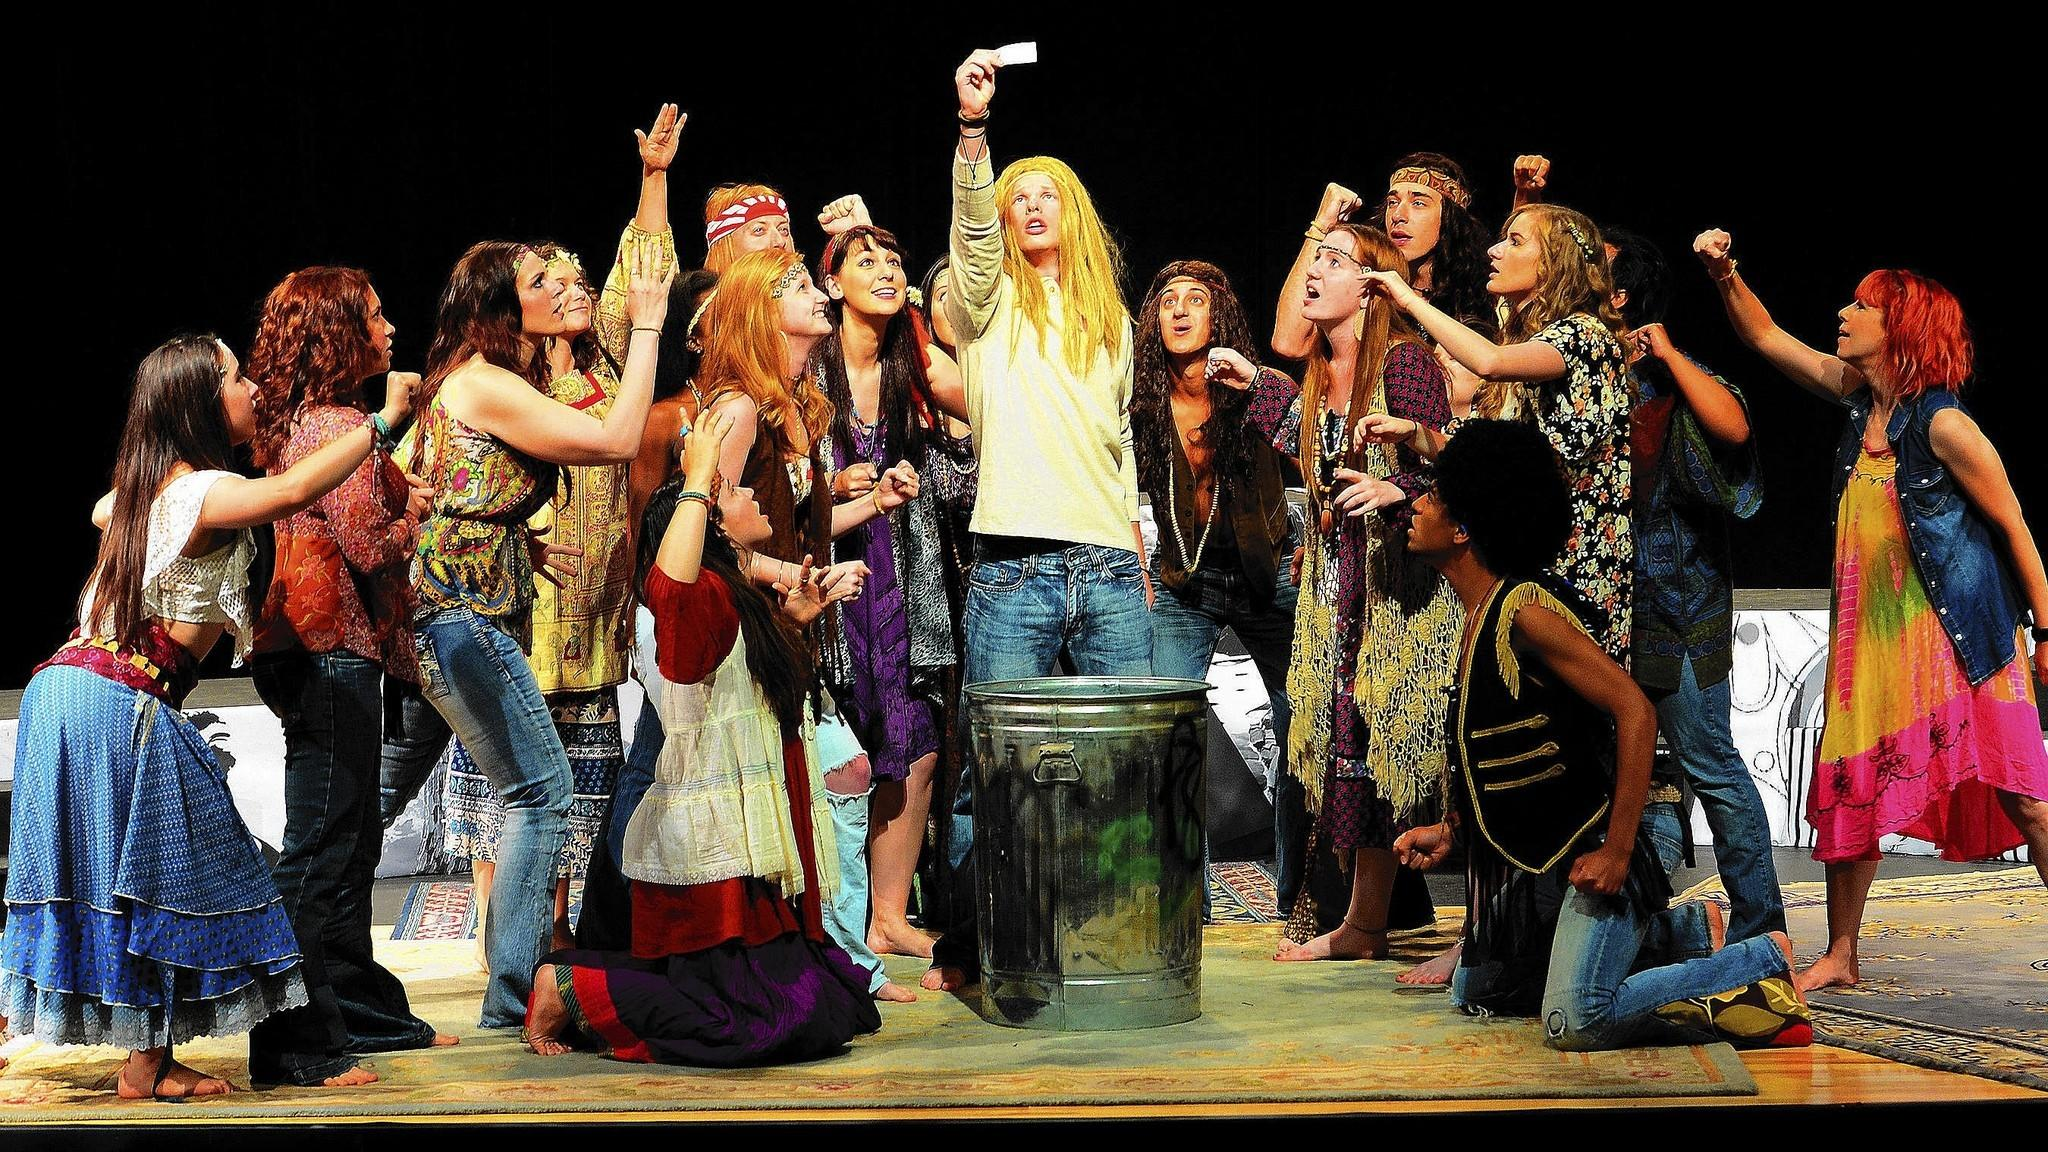 Dustin Brinker of Allentown (center) and Taylor Fernandez (top right) strike a pose during a rehearsal for 'Hair' at Cedar Crest College.